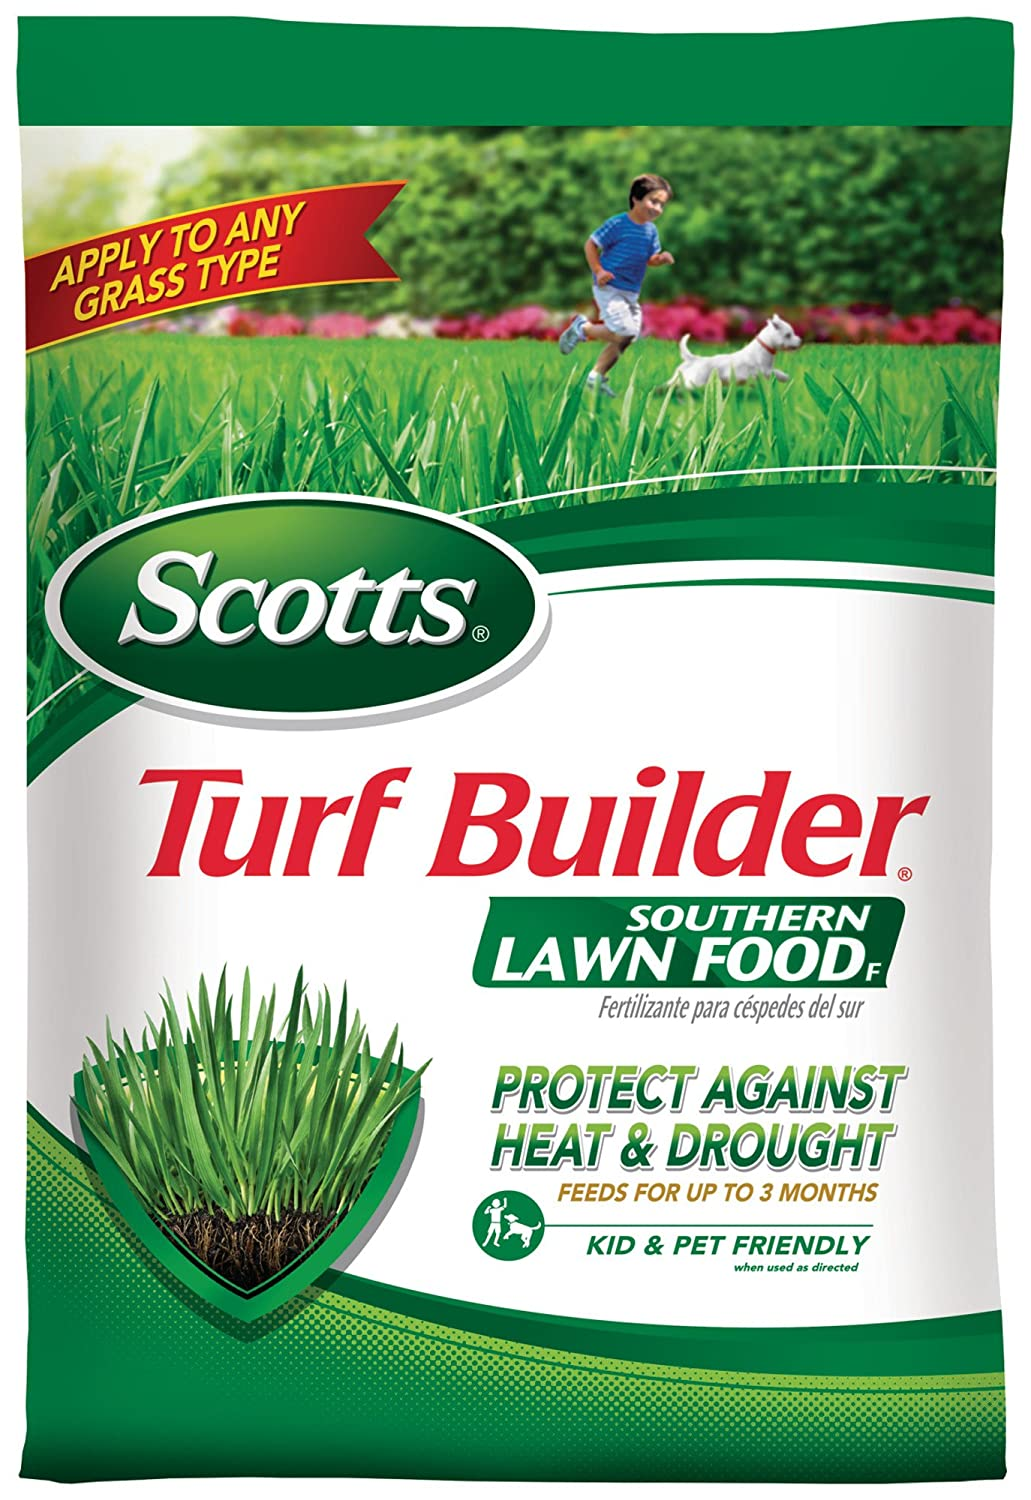 Scotts Southern Builder Florida Fertilizer Image 1